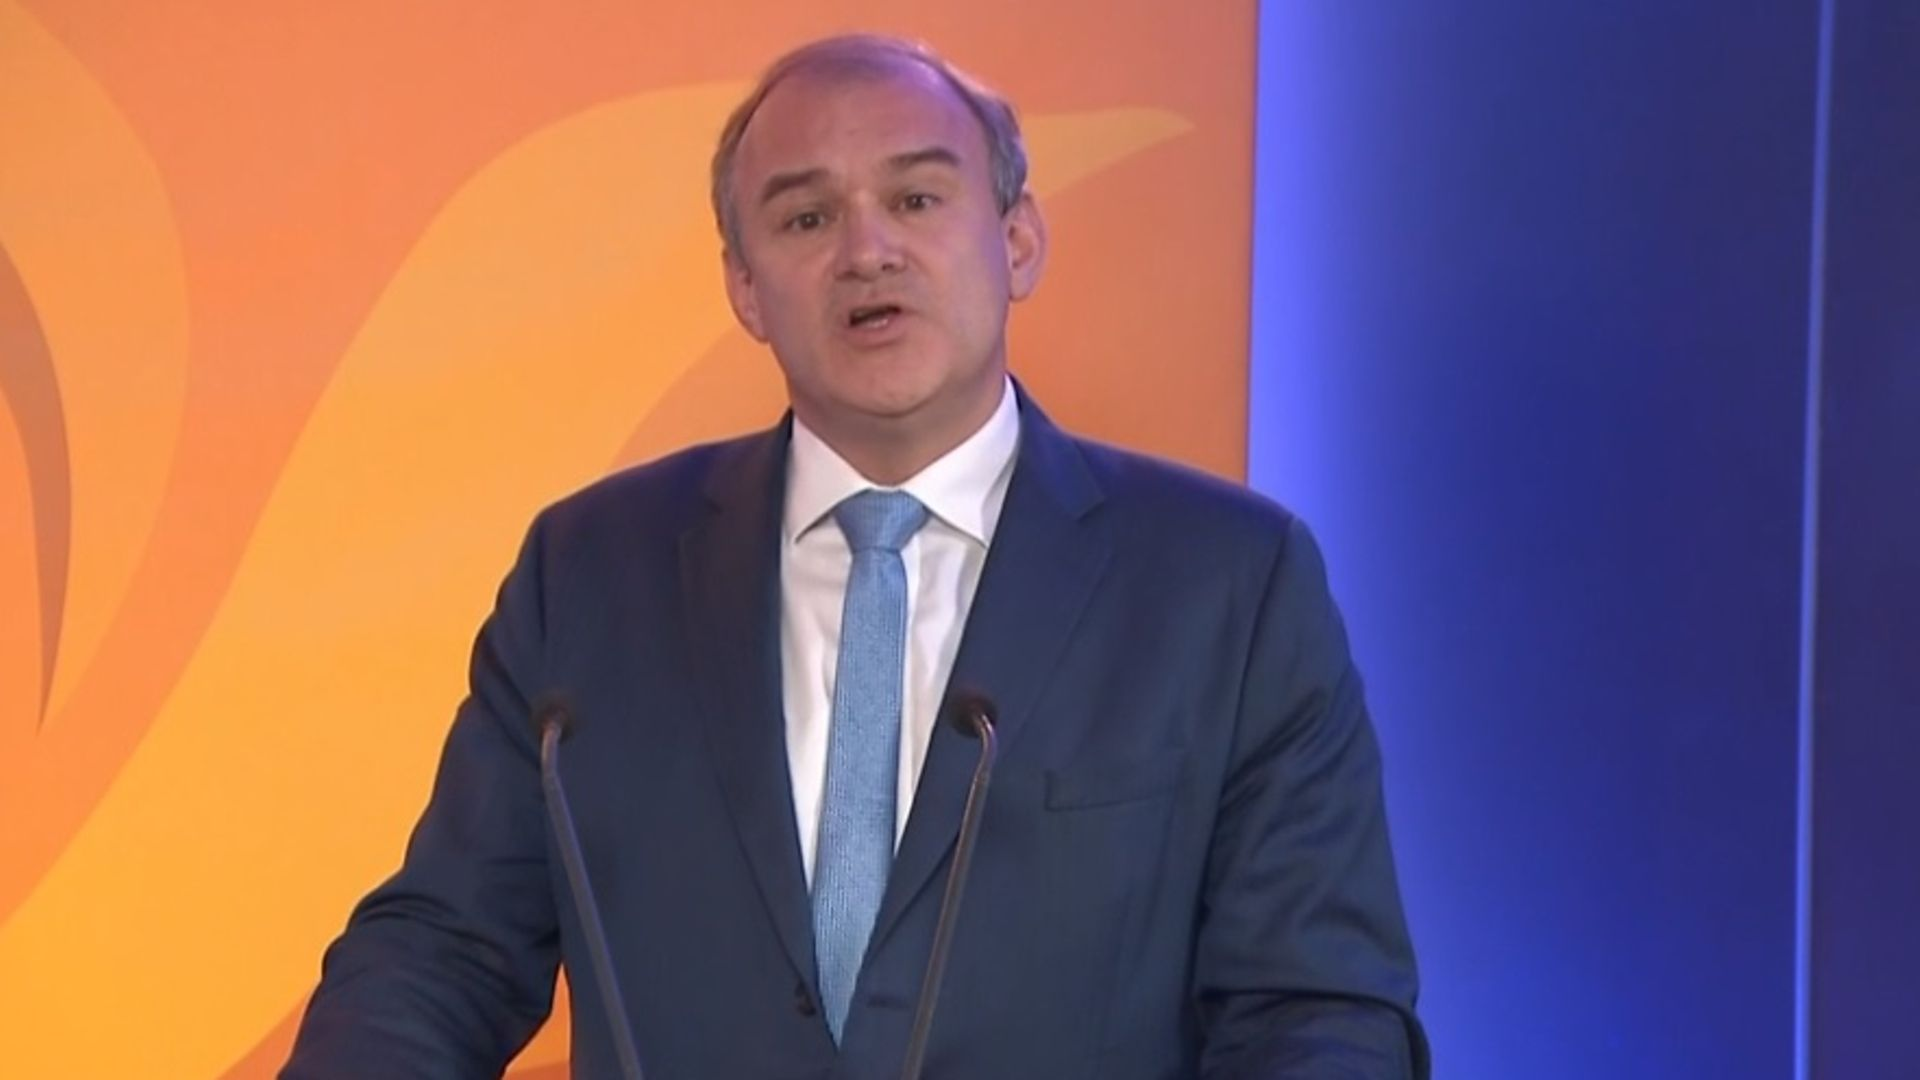 Ed Davey, the leader of the Liberal Democrats - Credit: BBC